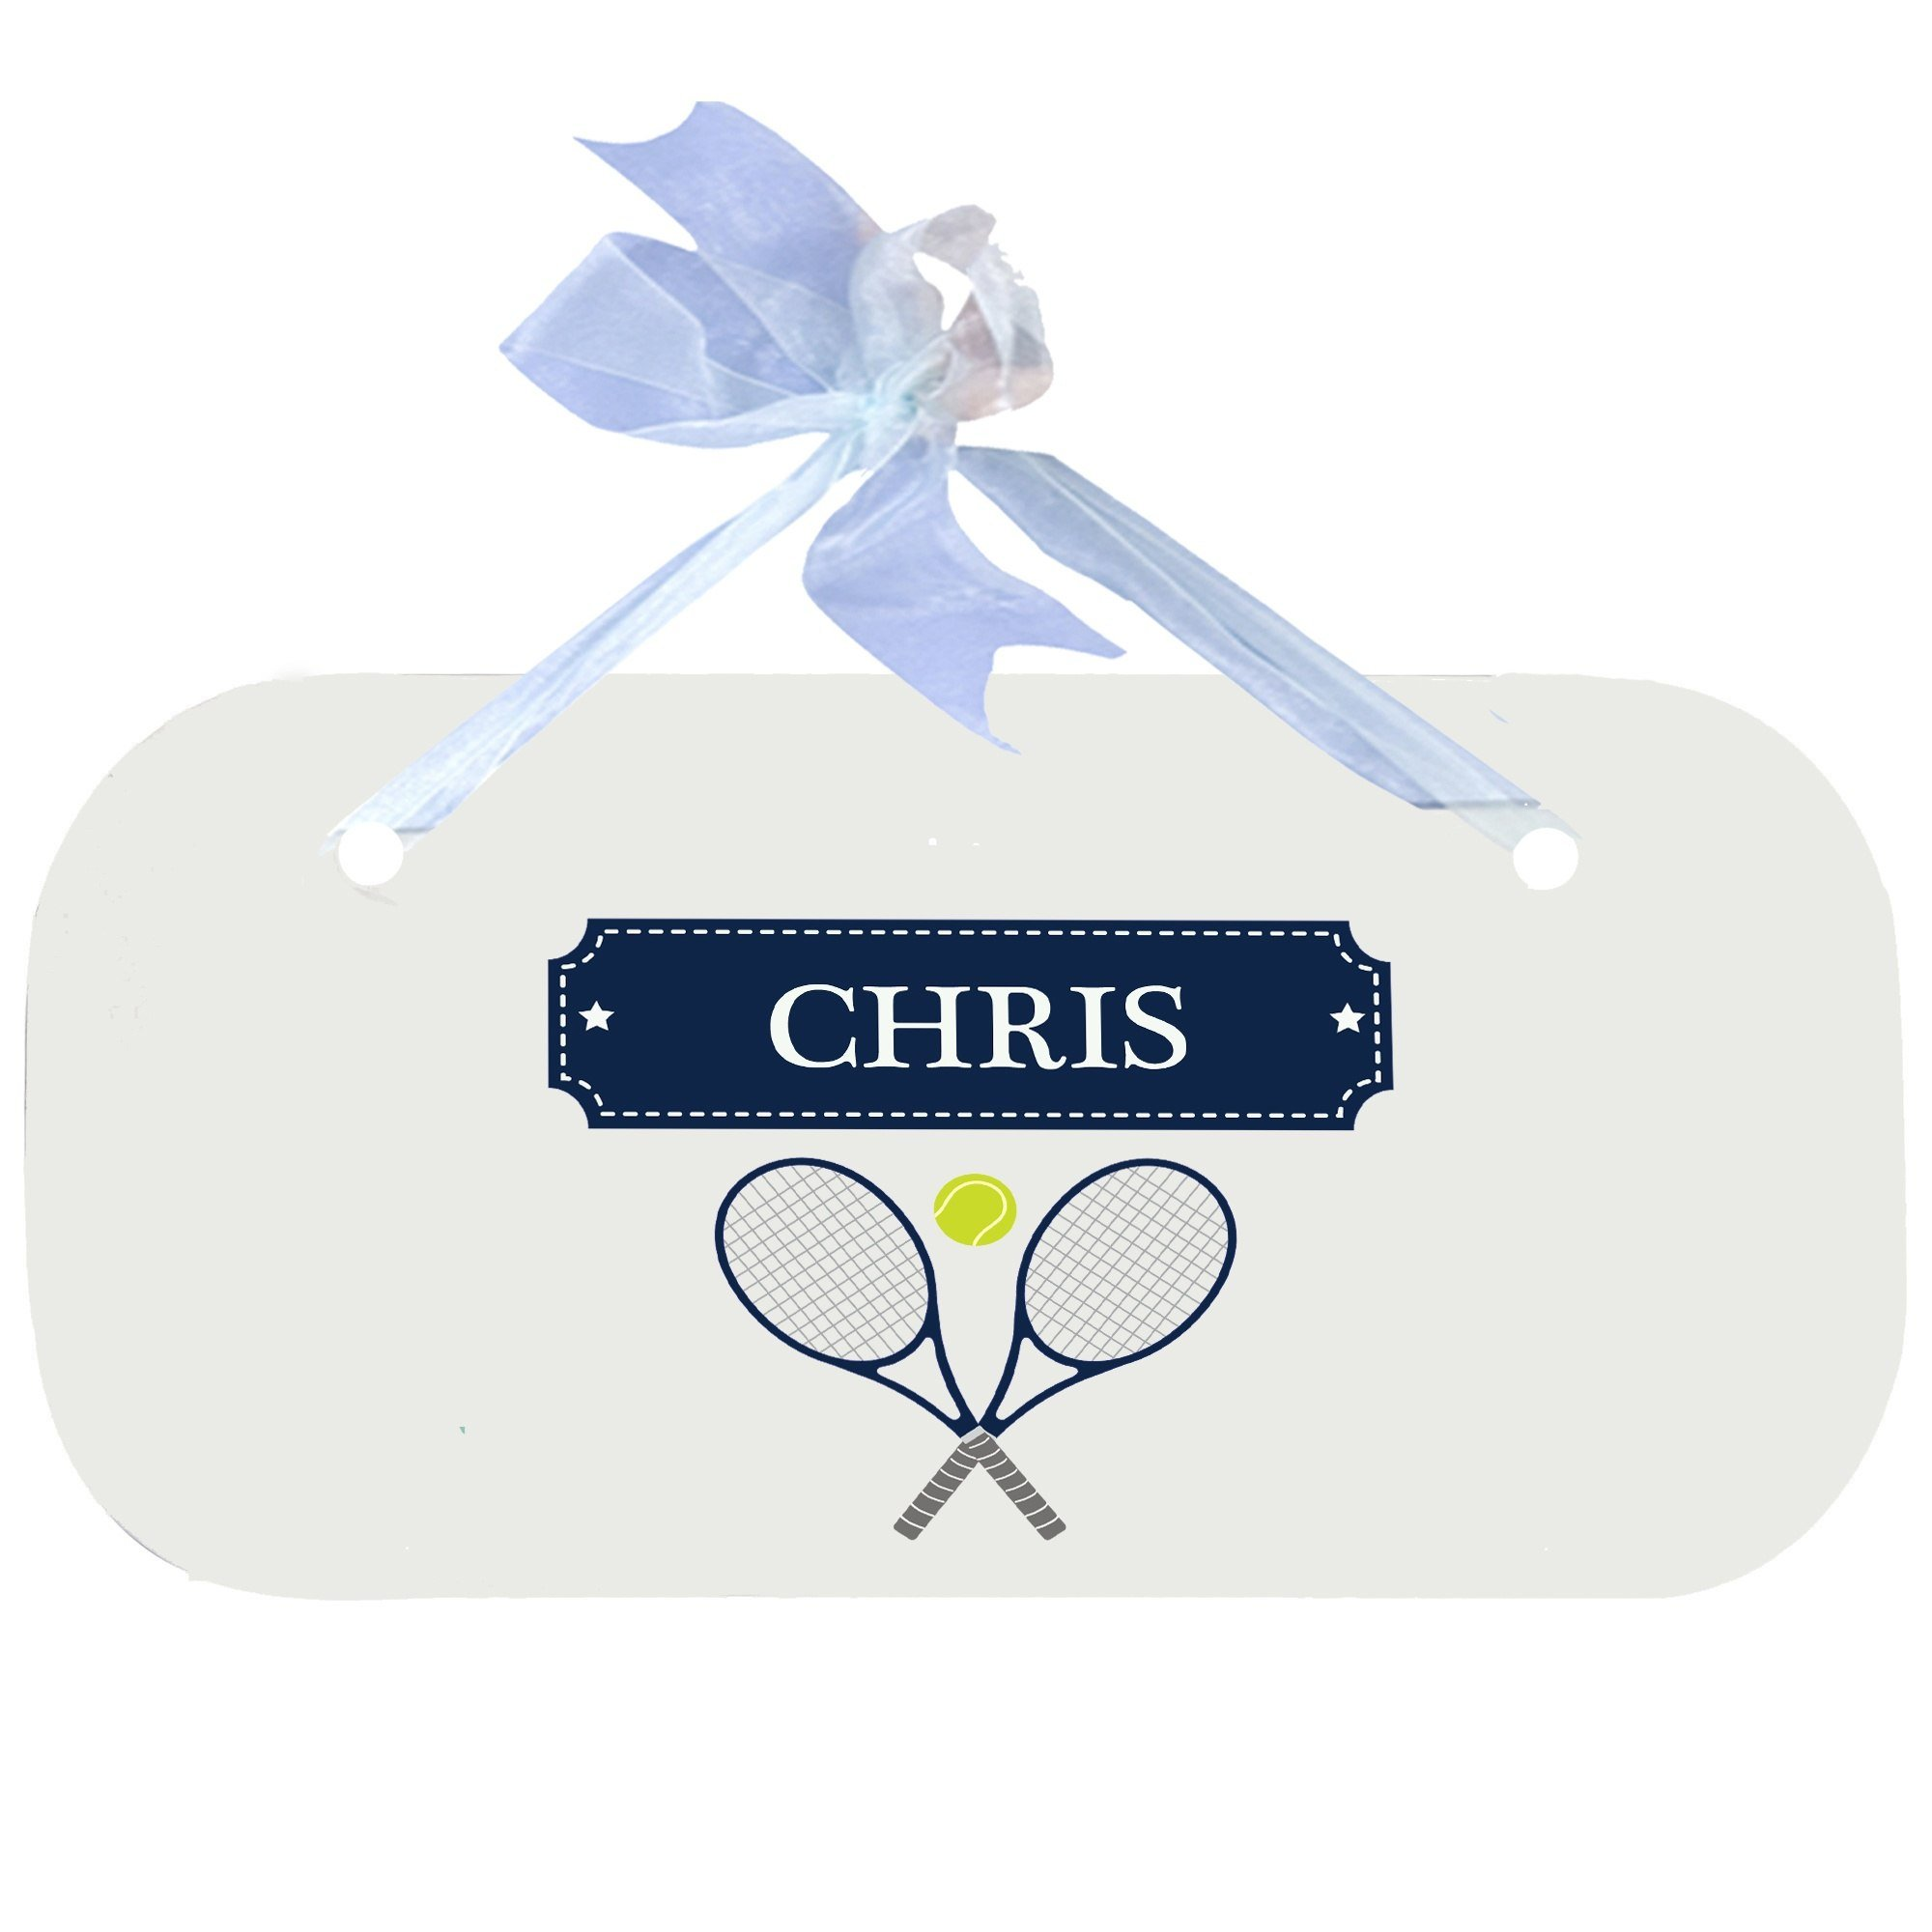 Personalized Tennis Wooden Door Hanger With Blue Ribbon